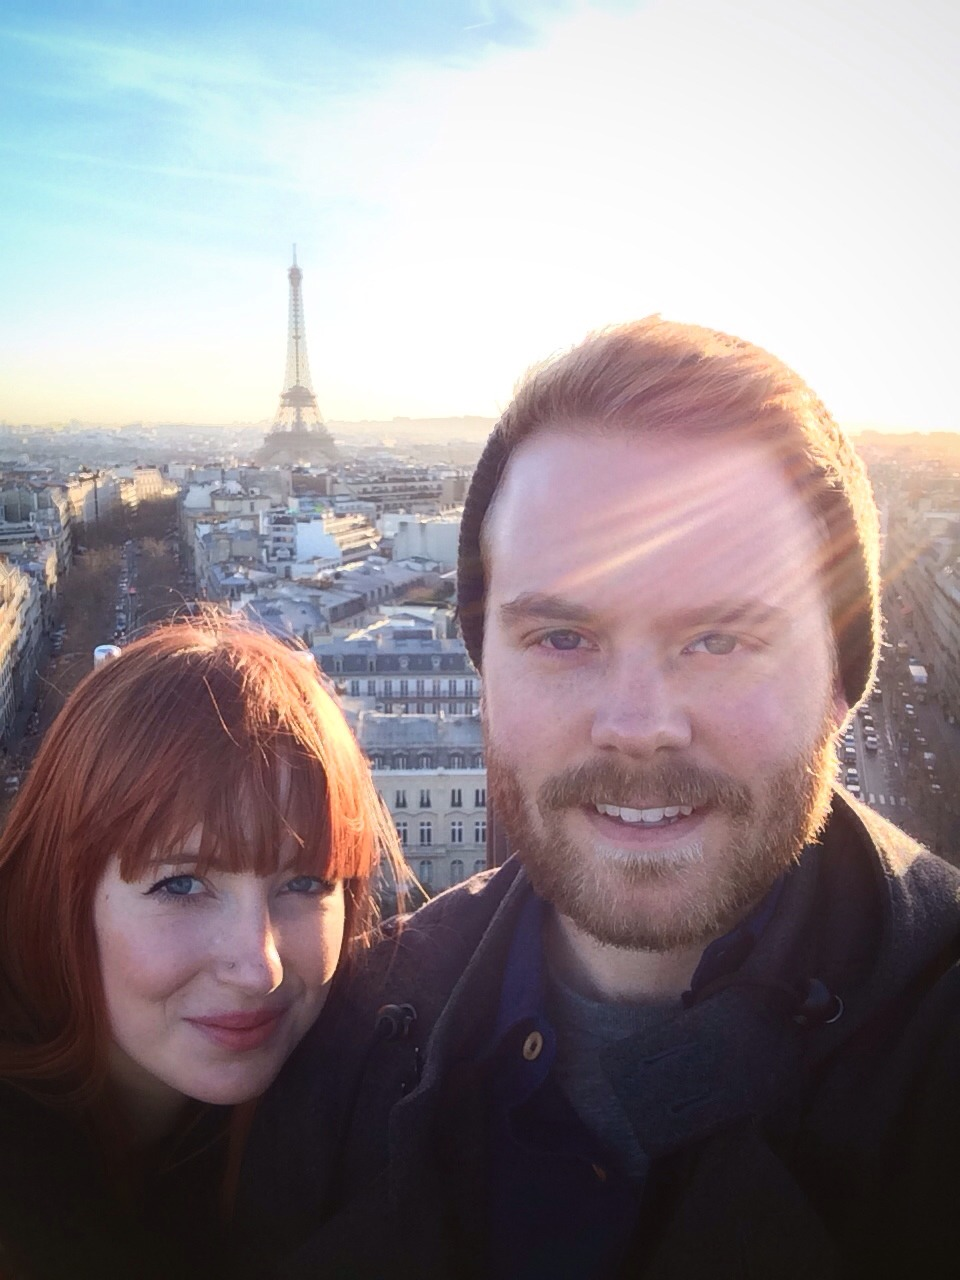 Top if the Arc de Triomphe with the girl